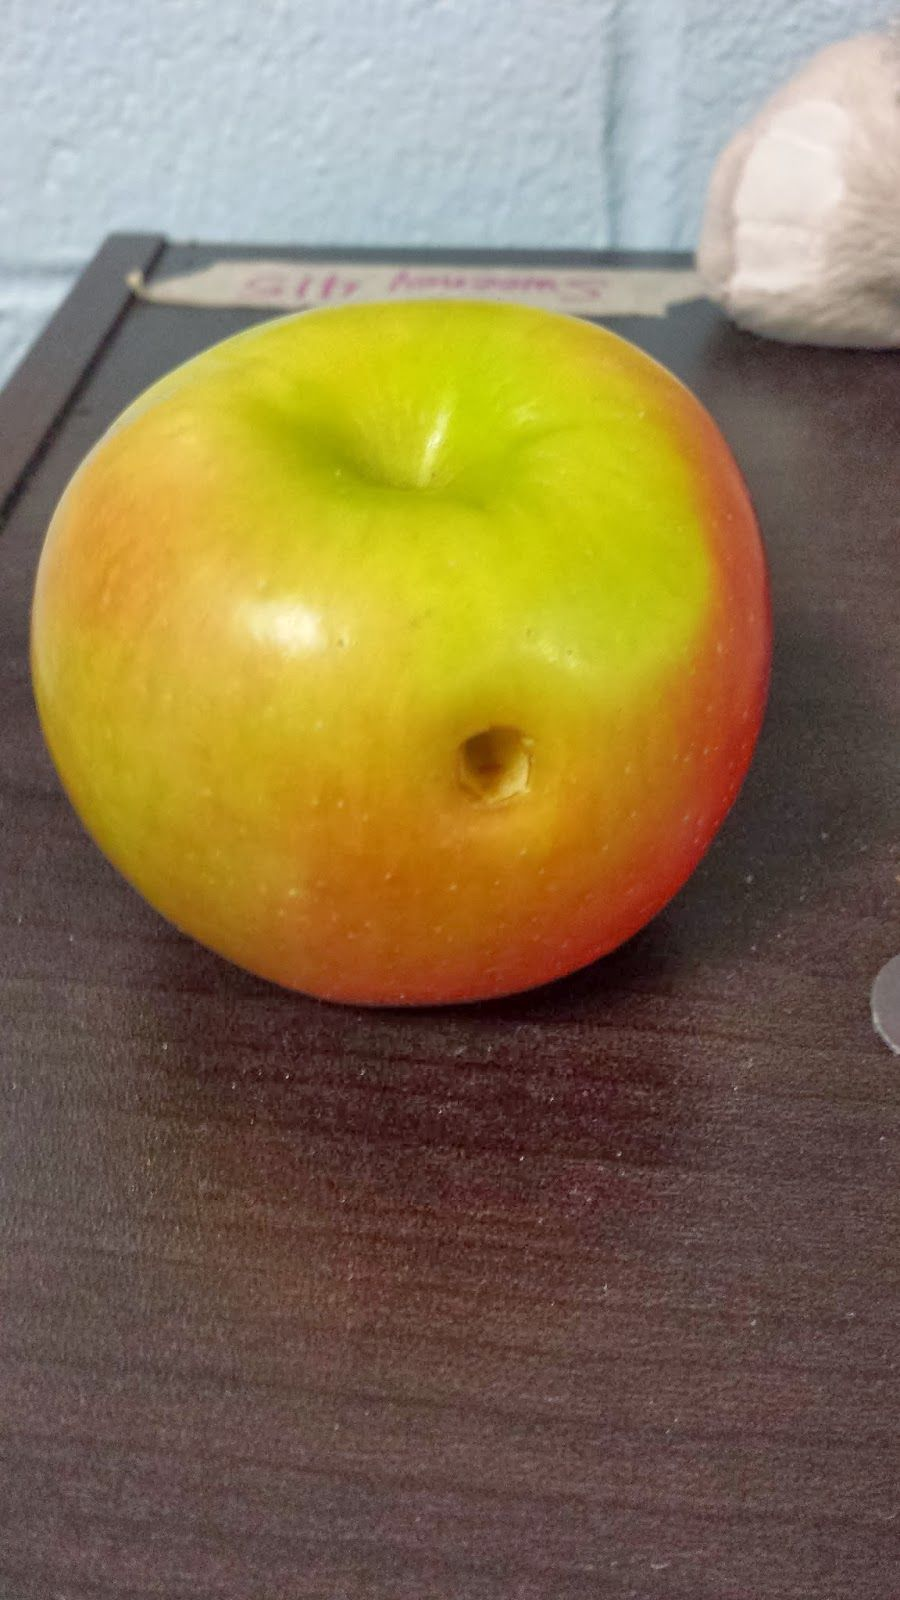 cavity experiment for dental health unit poke a hole in an apple